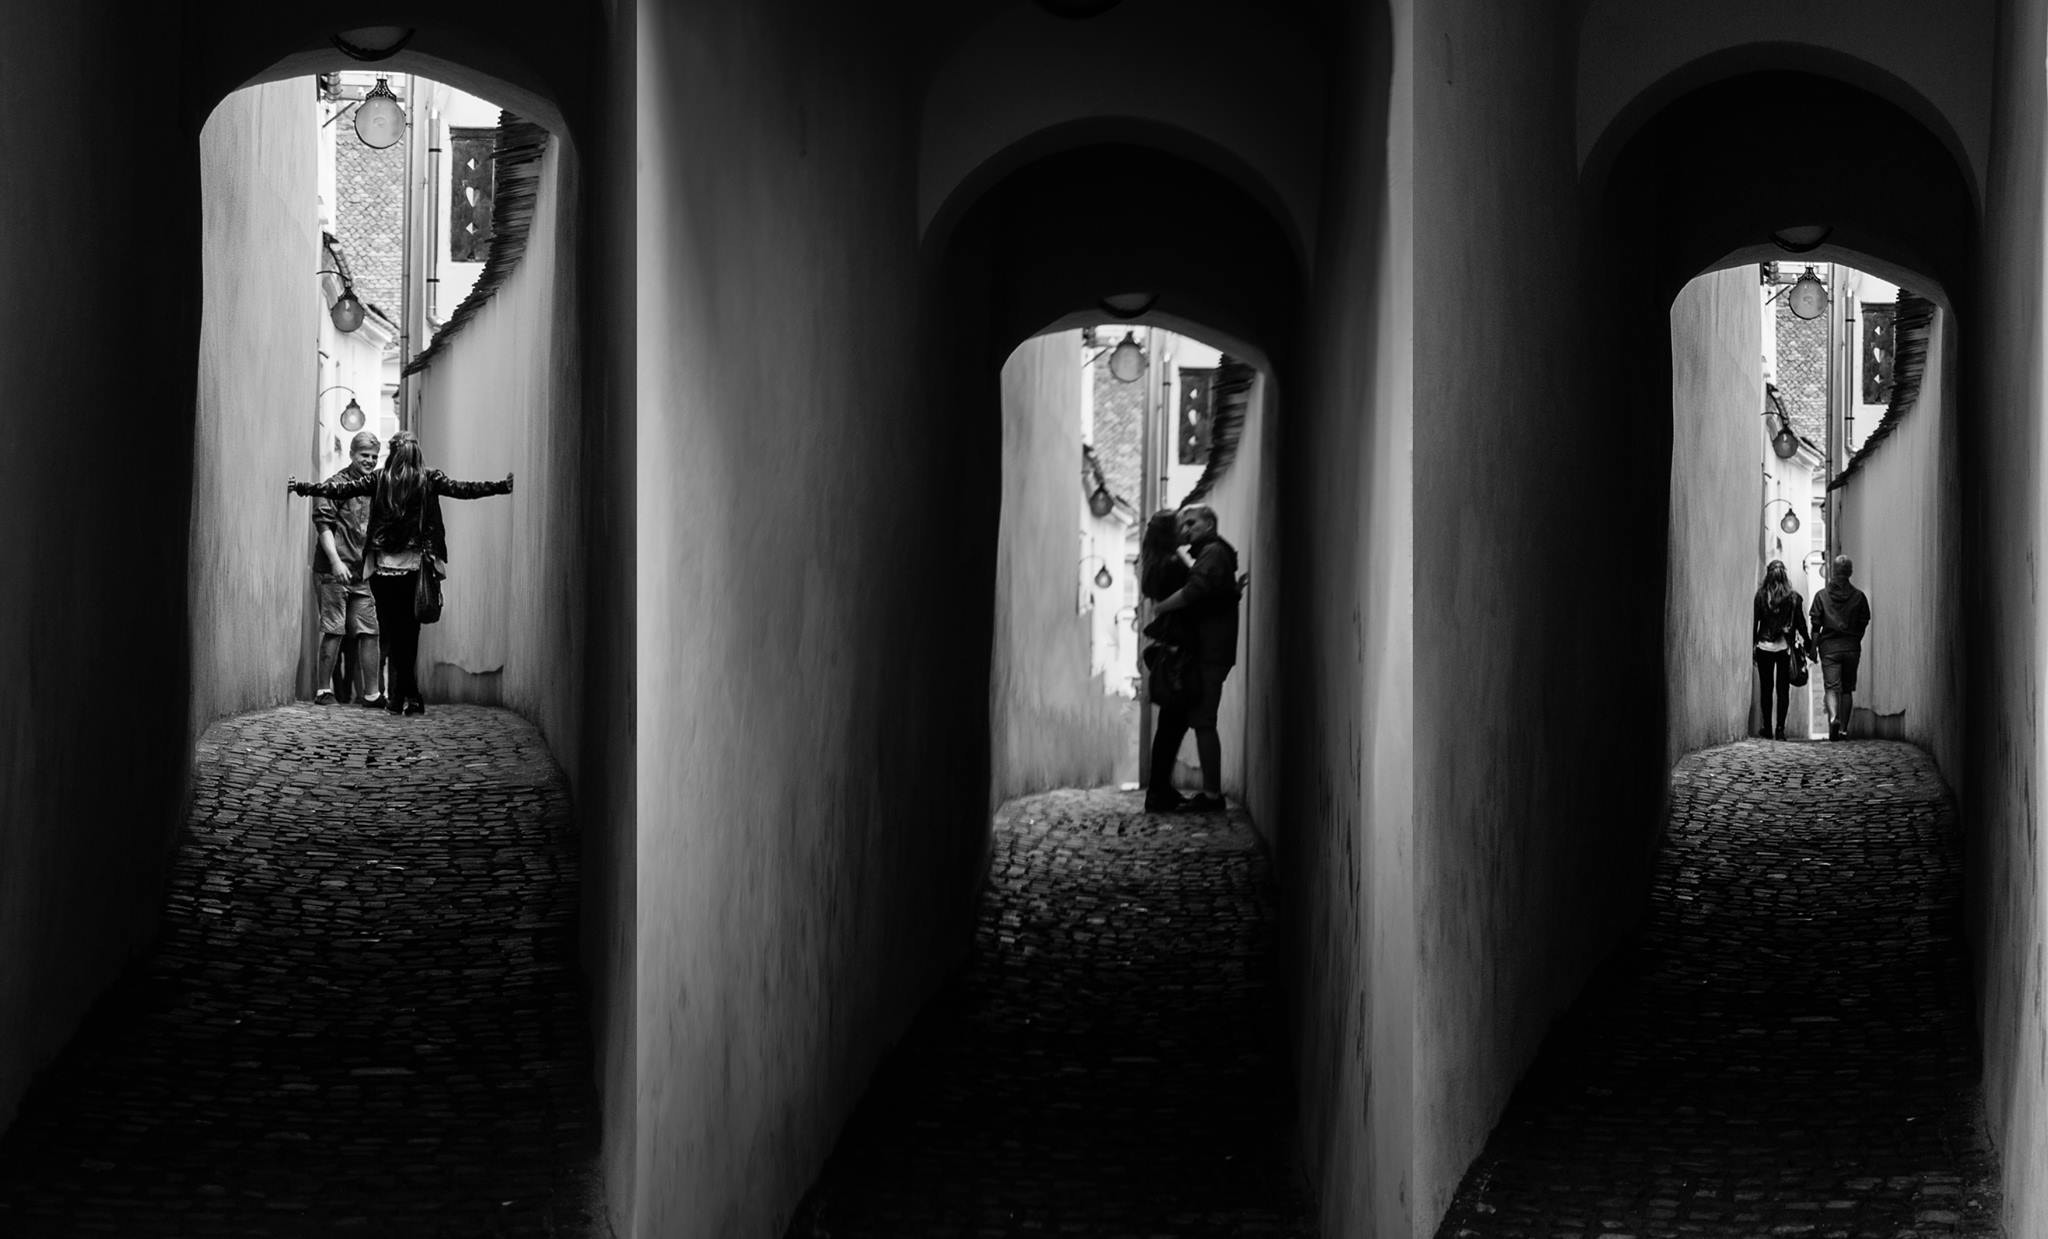 Photograph 'Boy Meets Girl' by Dan Alexandru on 500px